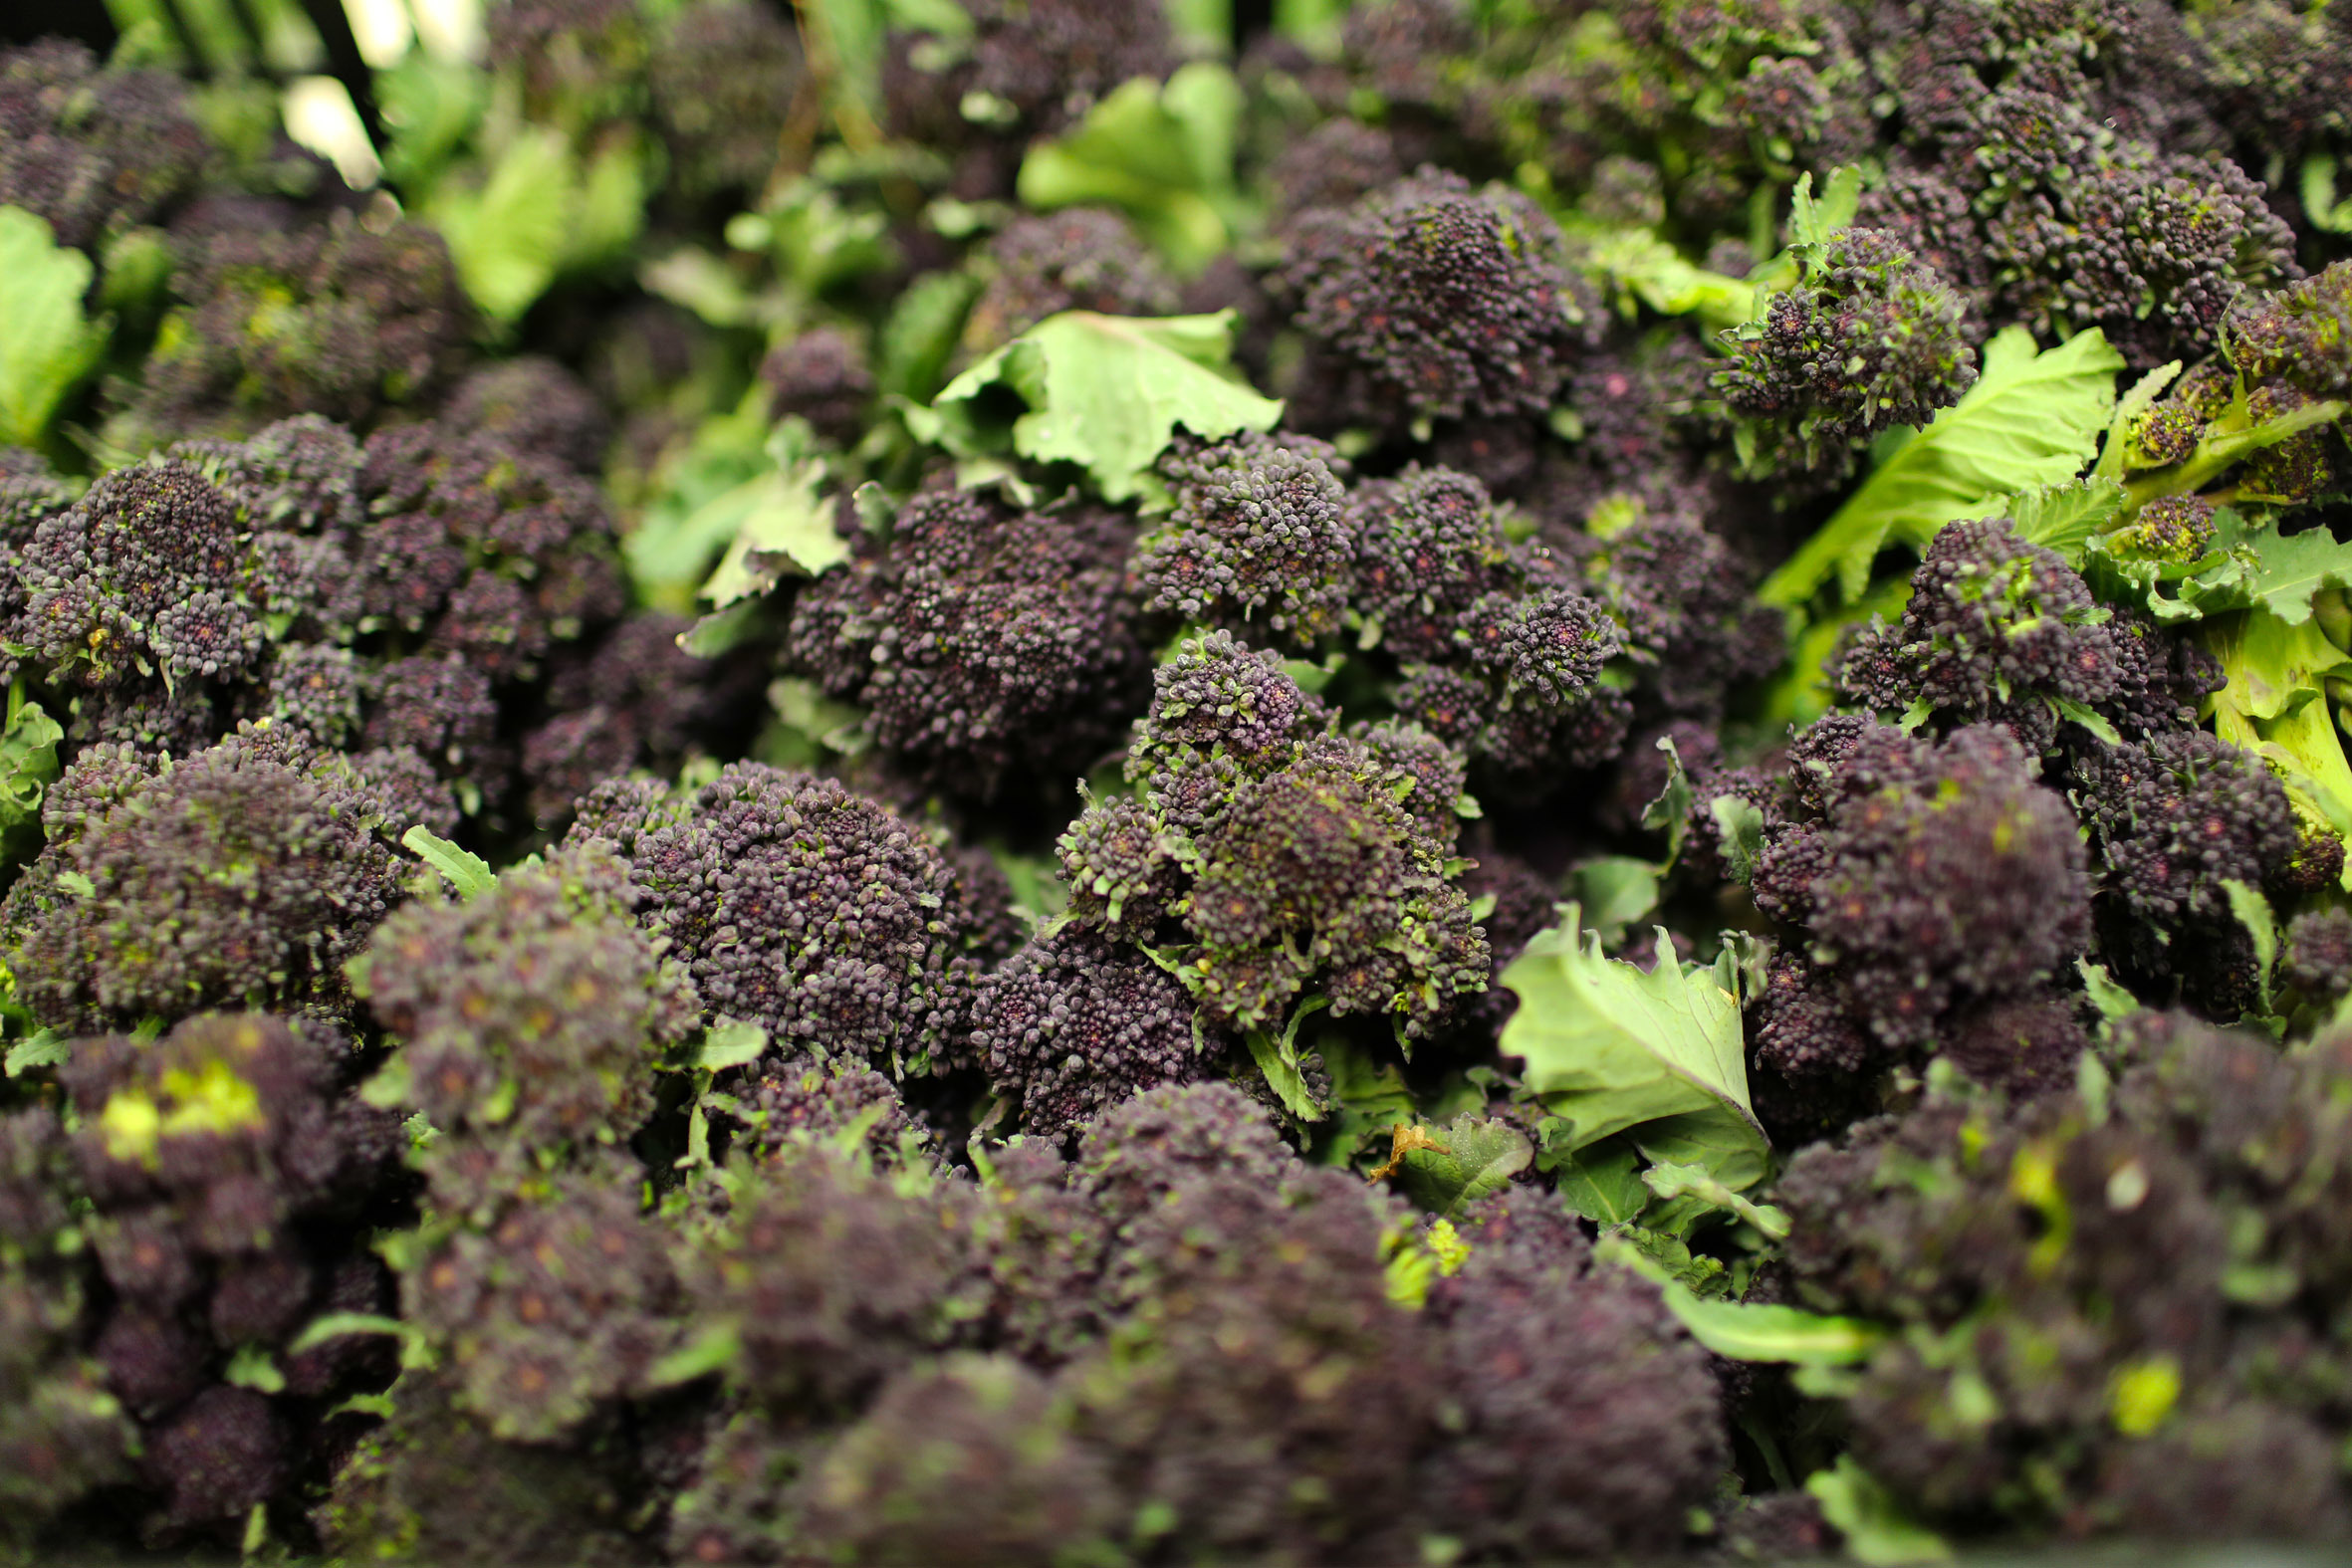 fruit-and-vegetable-market-report-february-2014-purple-sprouting.jpg?mtime=20170922113424#asset:11352